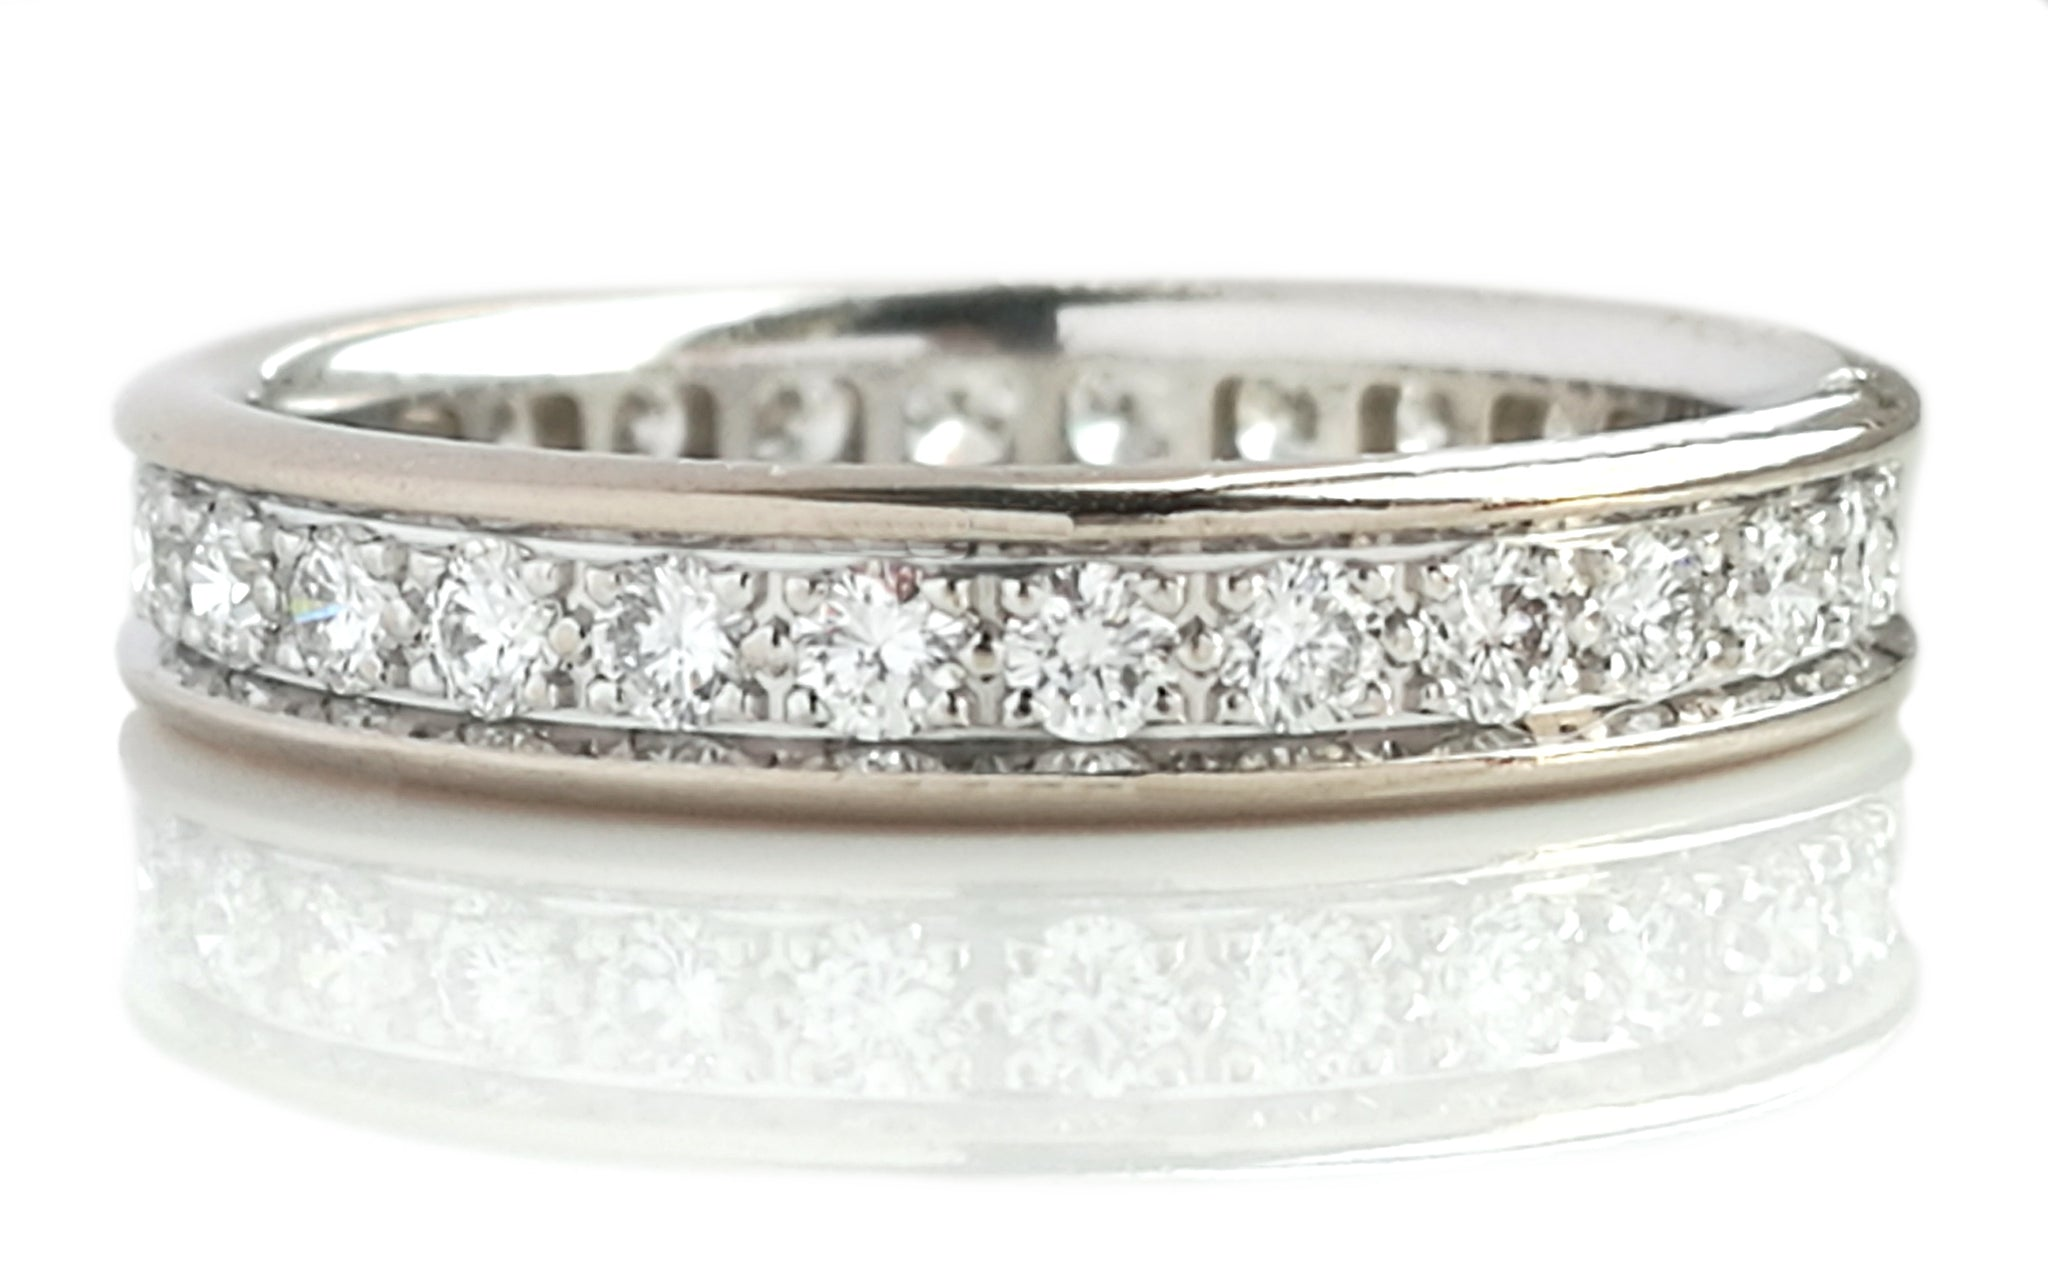 Cartier 3.5mm Ballerine Diamond Wedding Band in 18k White Gold